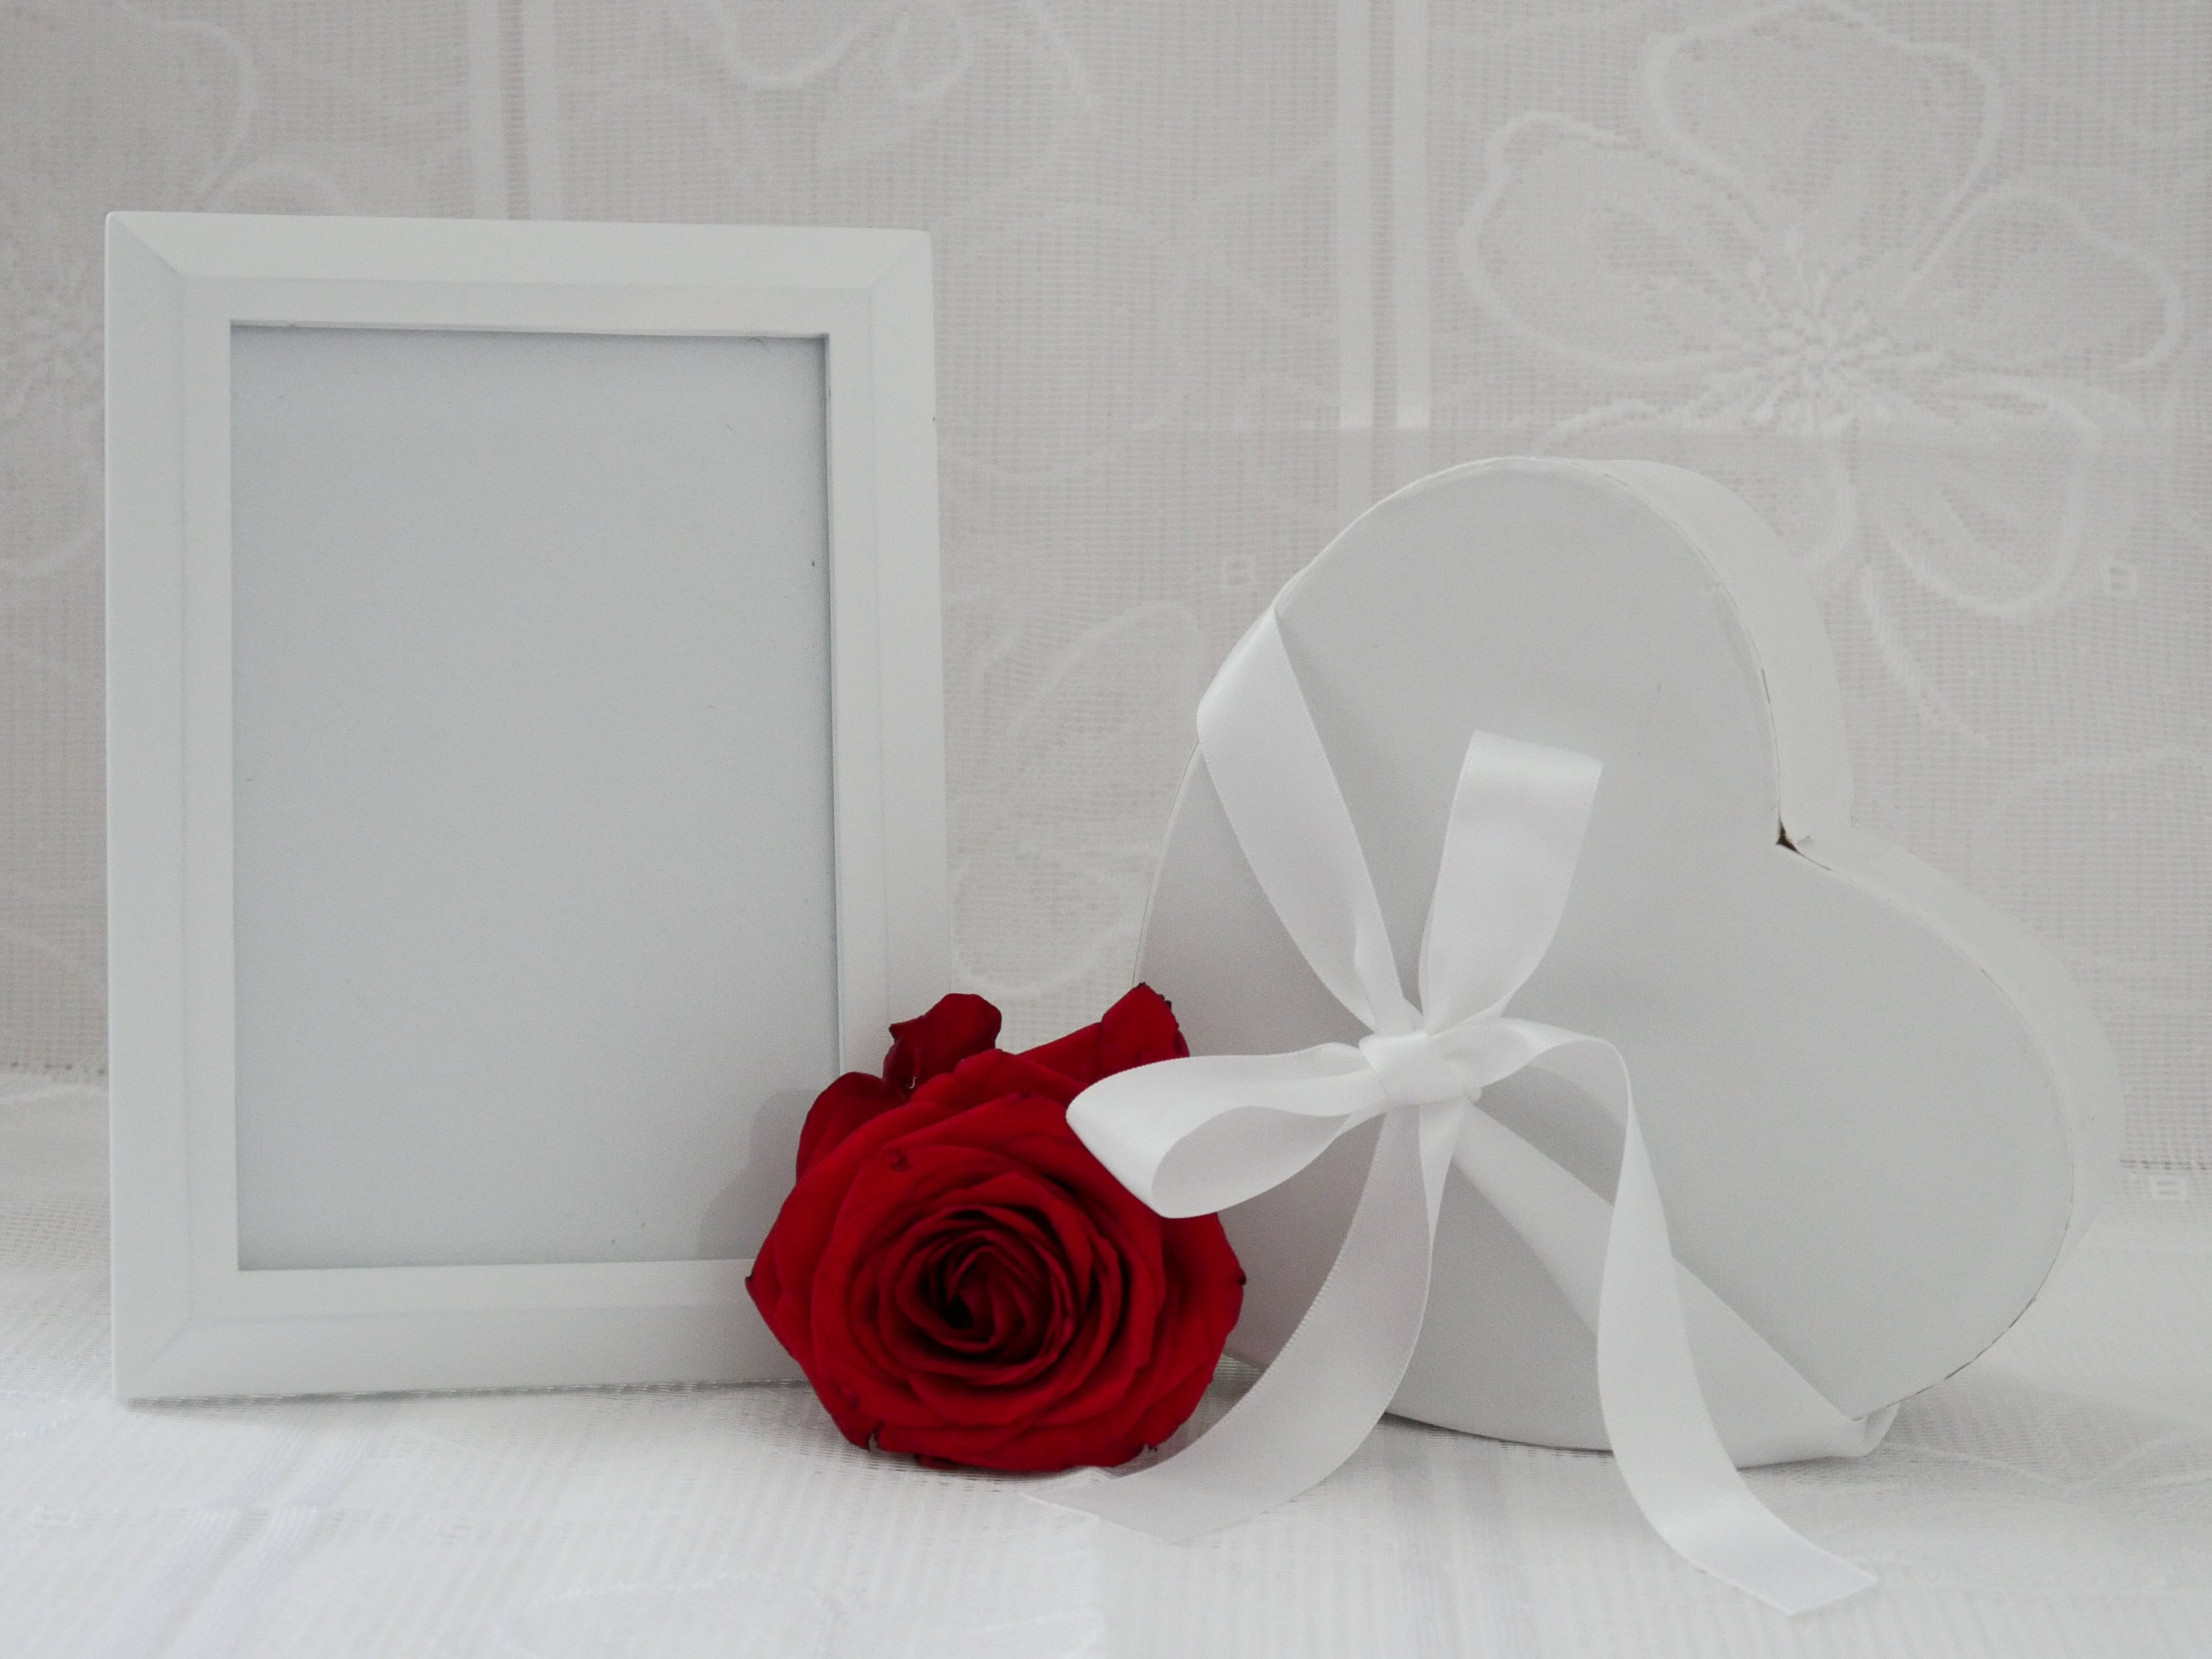 Free stock photo of decoration, heart, love, picture frame